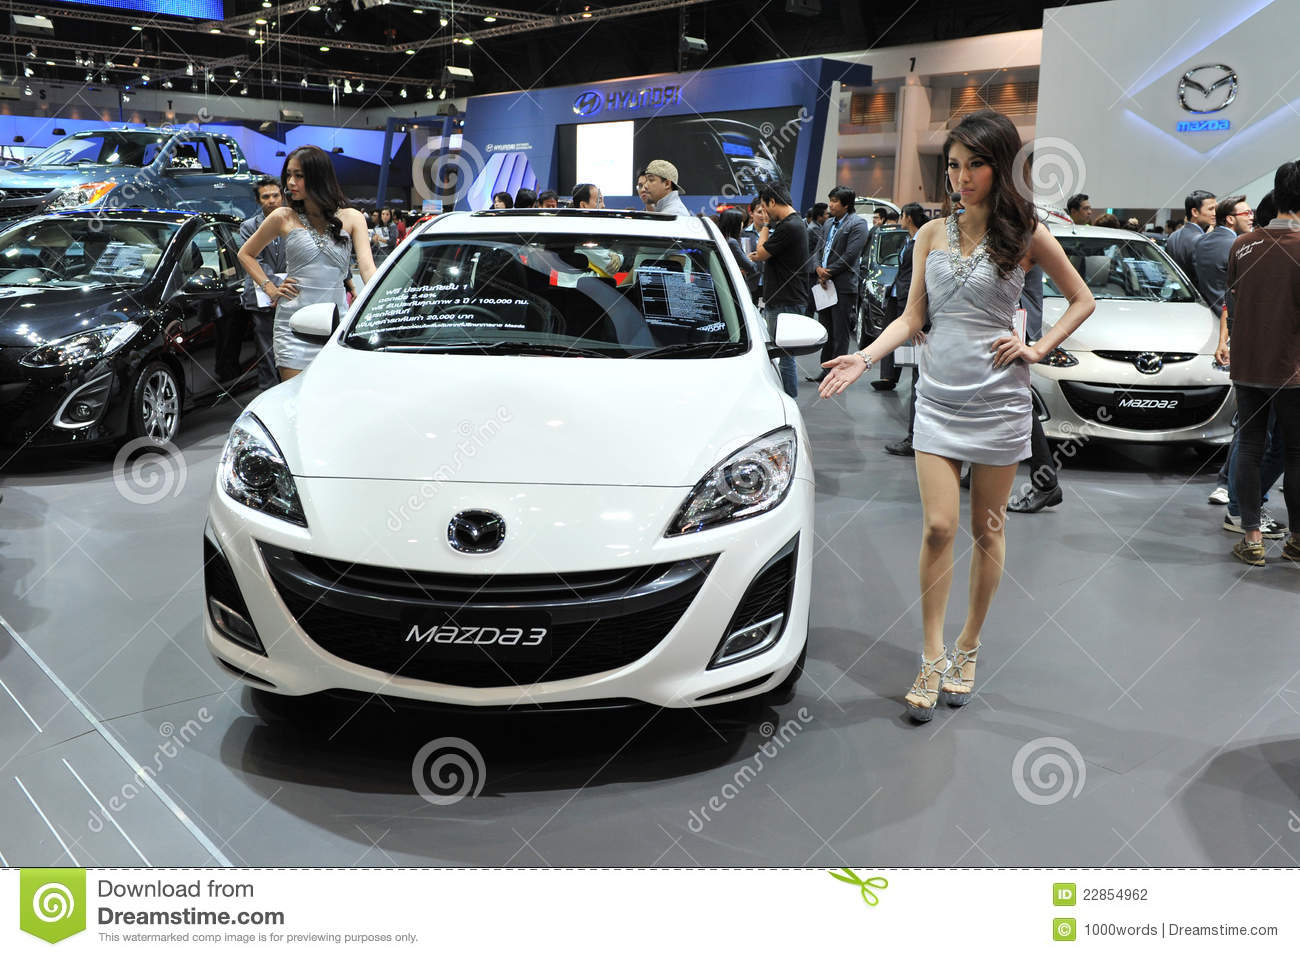 Mazda 3 On Display At A Motor Show Editorial Photography